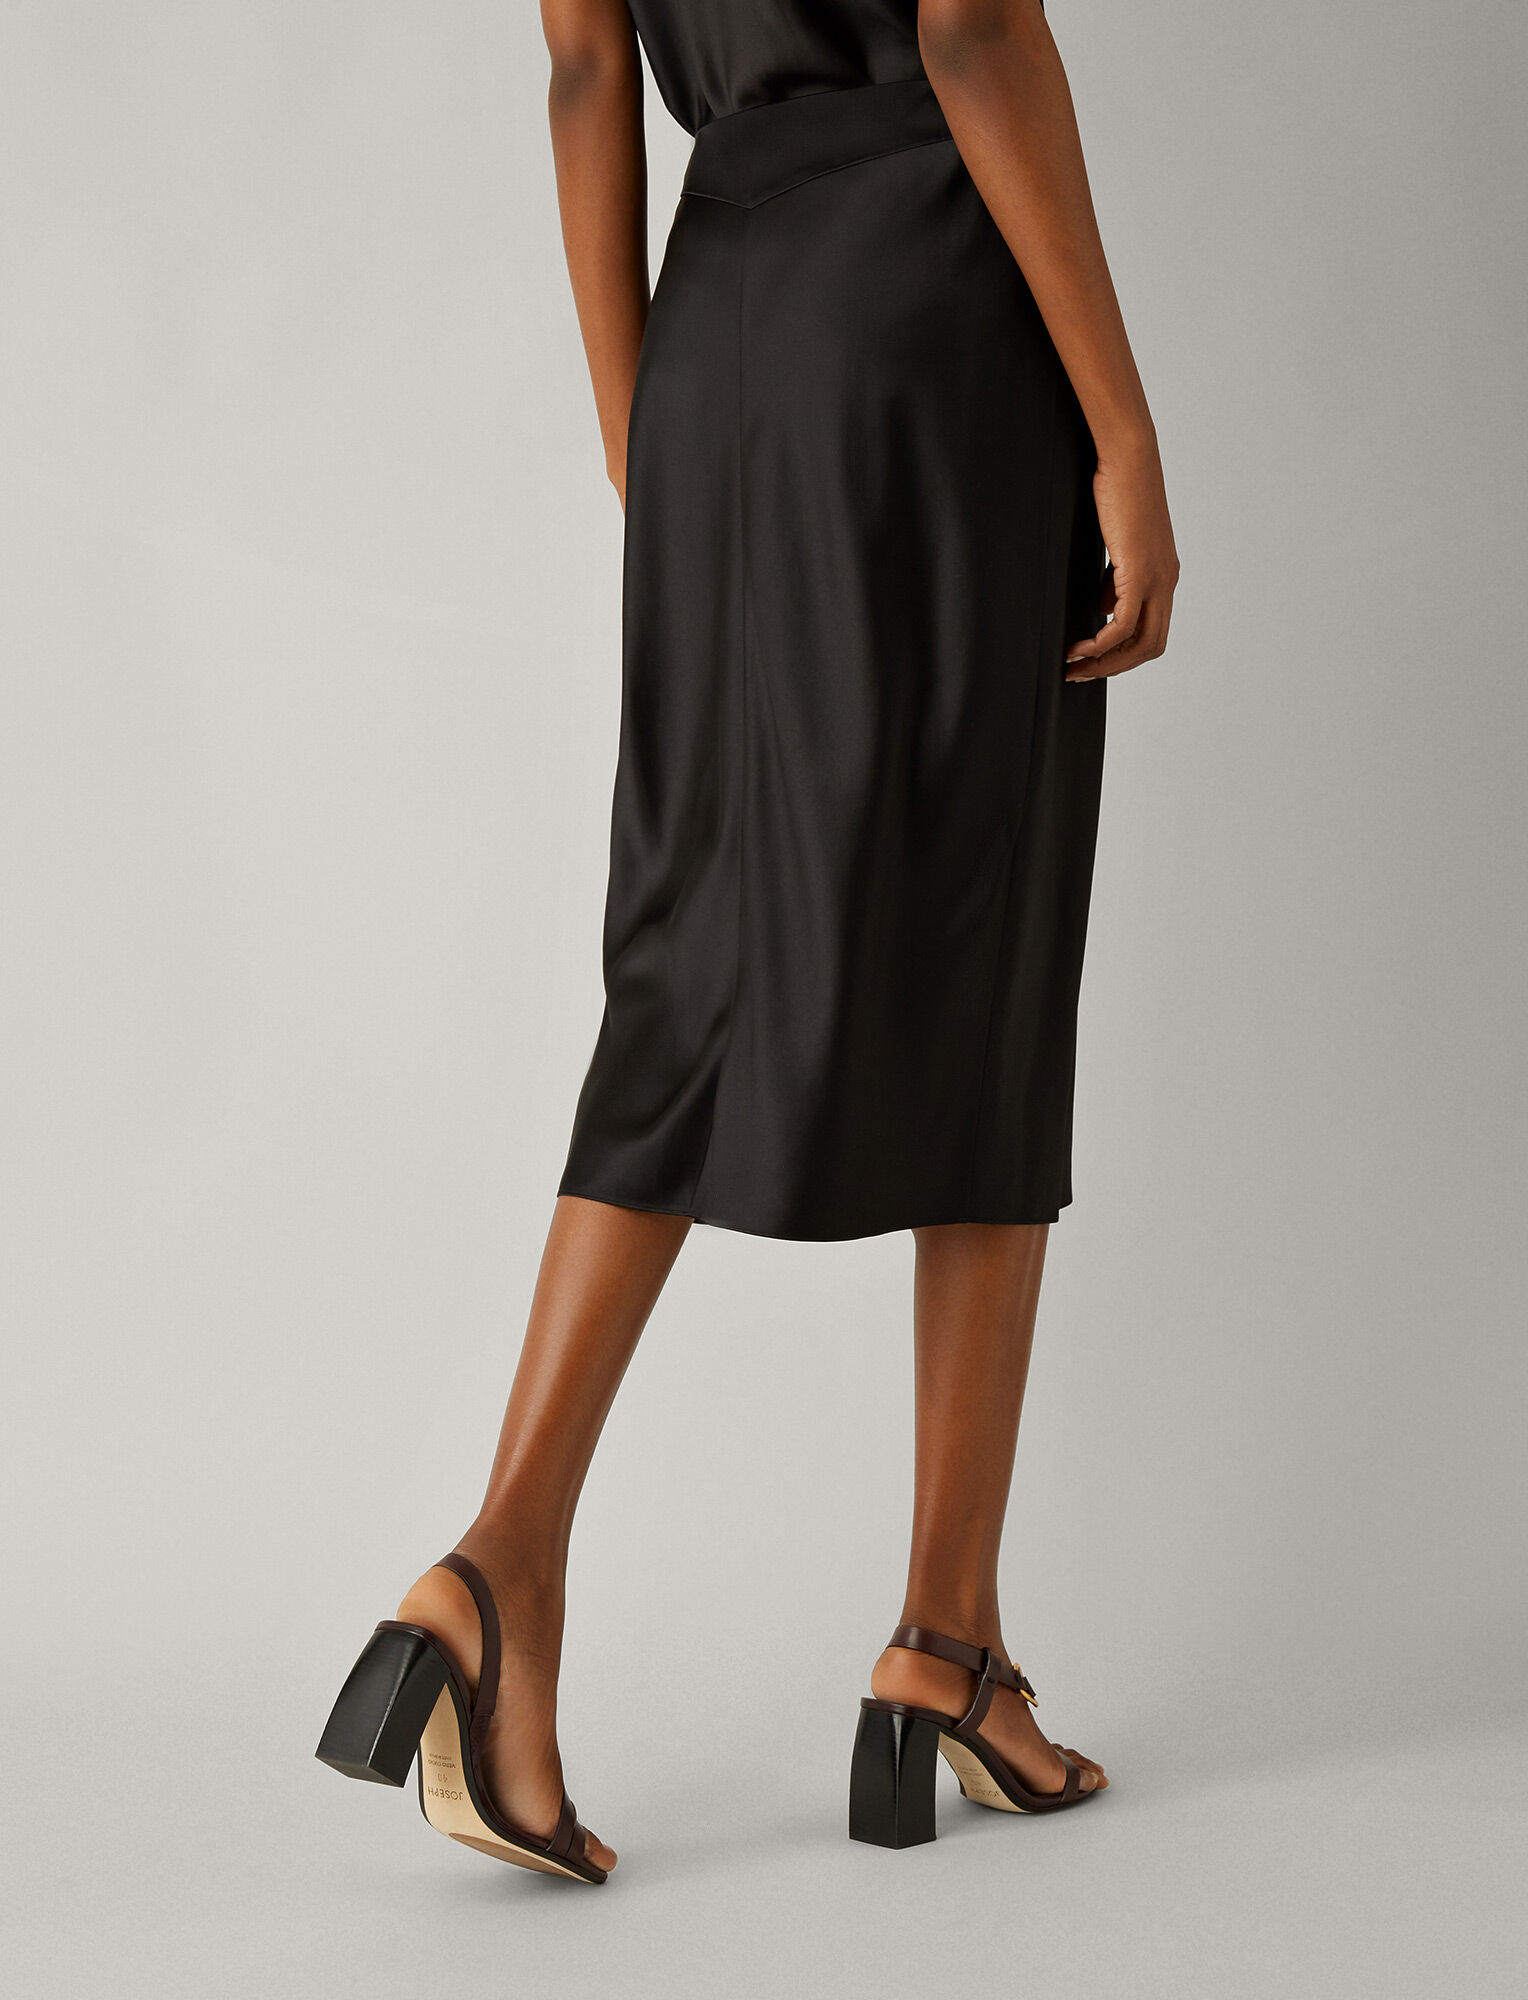 Joseph, Frances Silk Satin Skirt, in BLACK